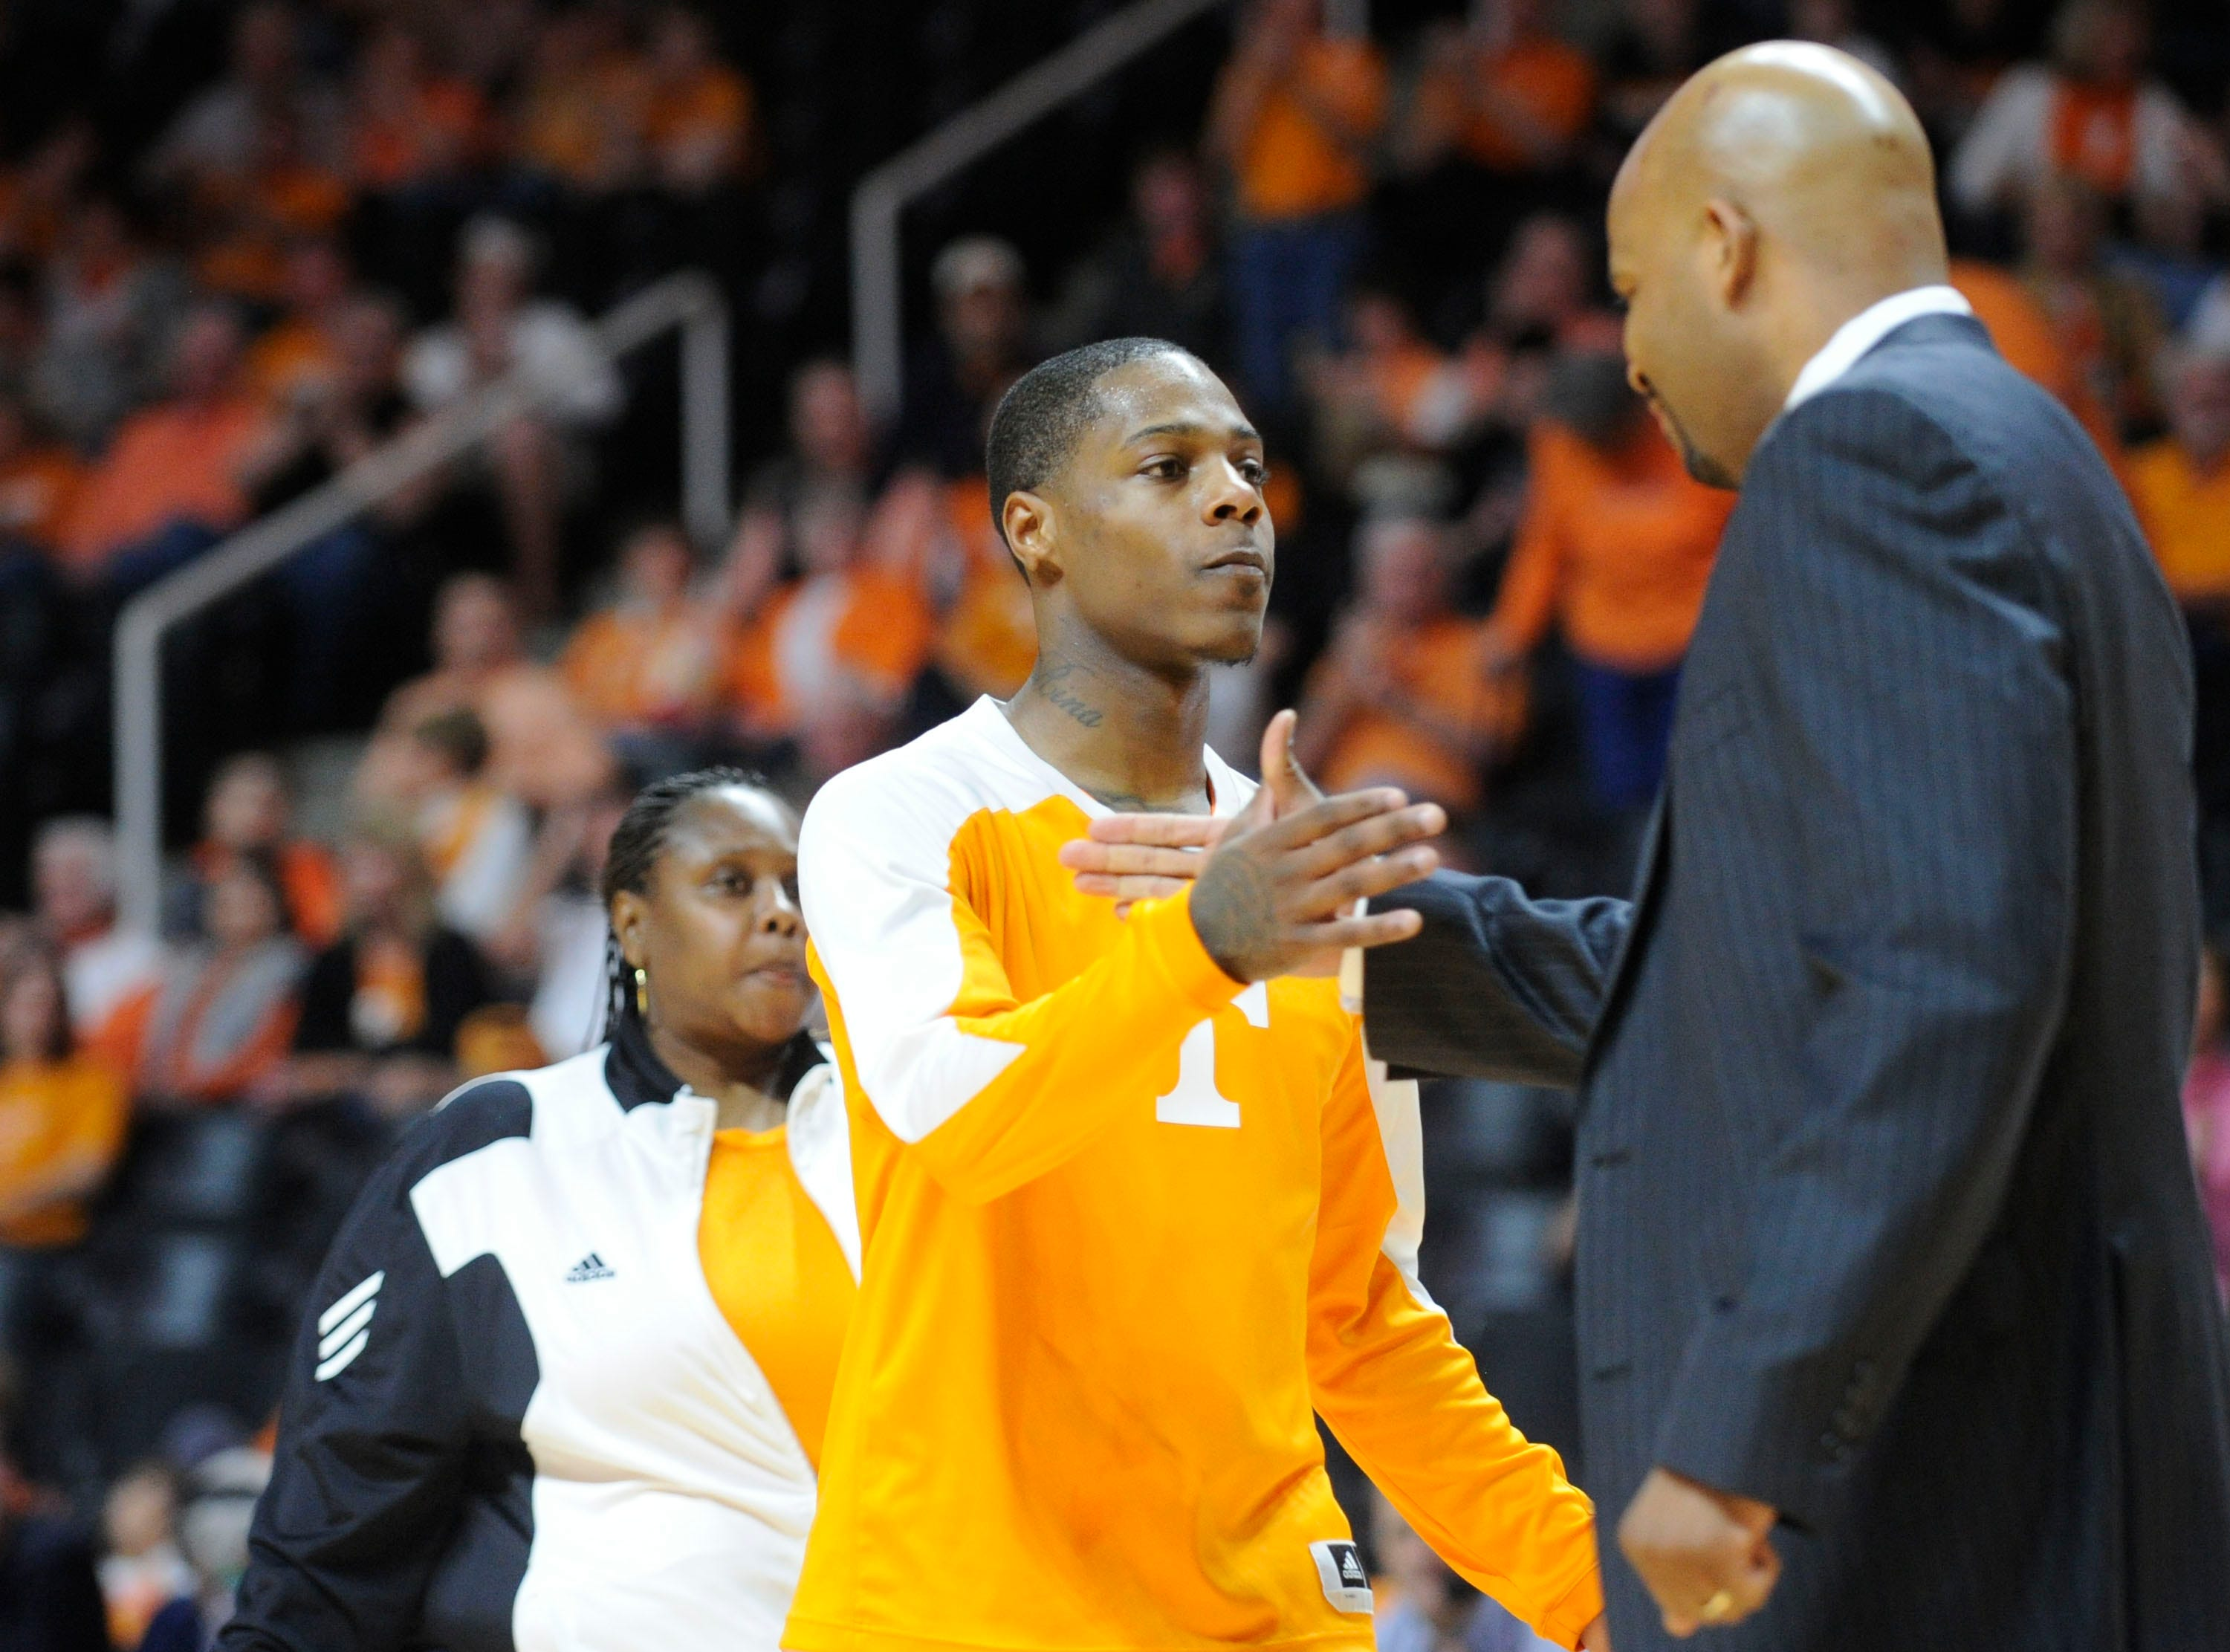 Tennessee guard Antonio Barton (2), center, shakes hands with Tennessee head coach Cuonzo Martin as he is recognized on senior day before Tennessee's game against Missouri at the Thompson-Boling Arena in Knoxville on Saturday, March 8, 2014.